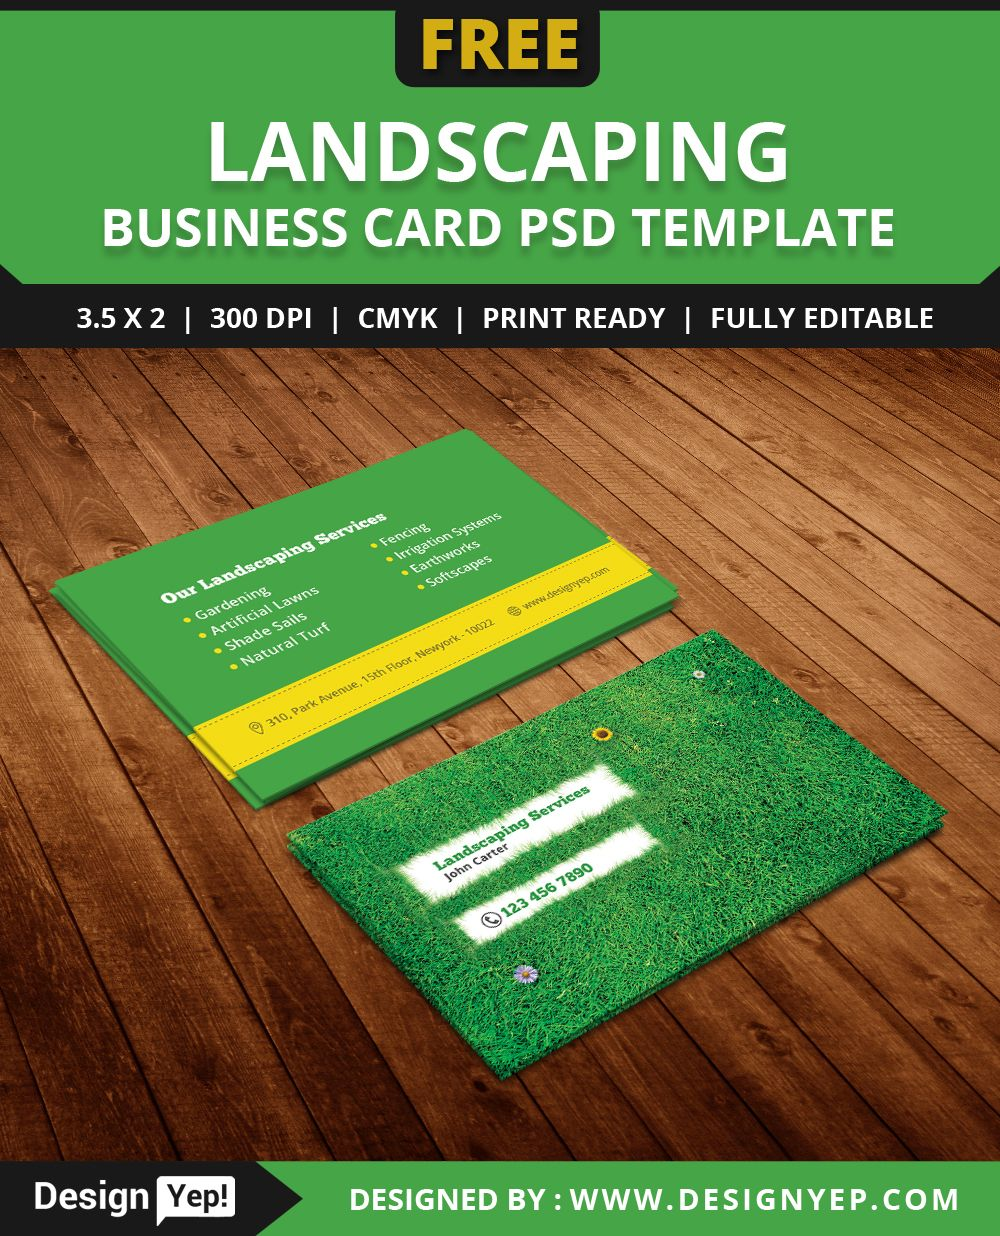 freelandscapingbusinesscardtemplatepsd  free business card